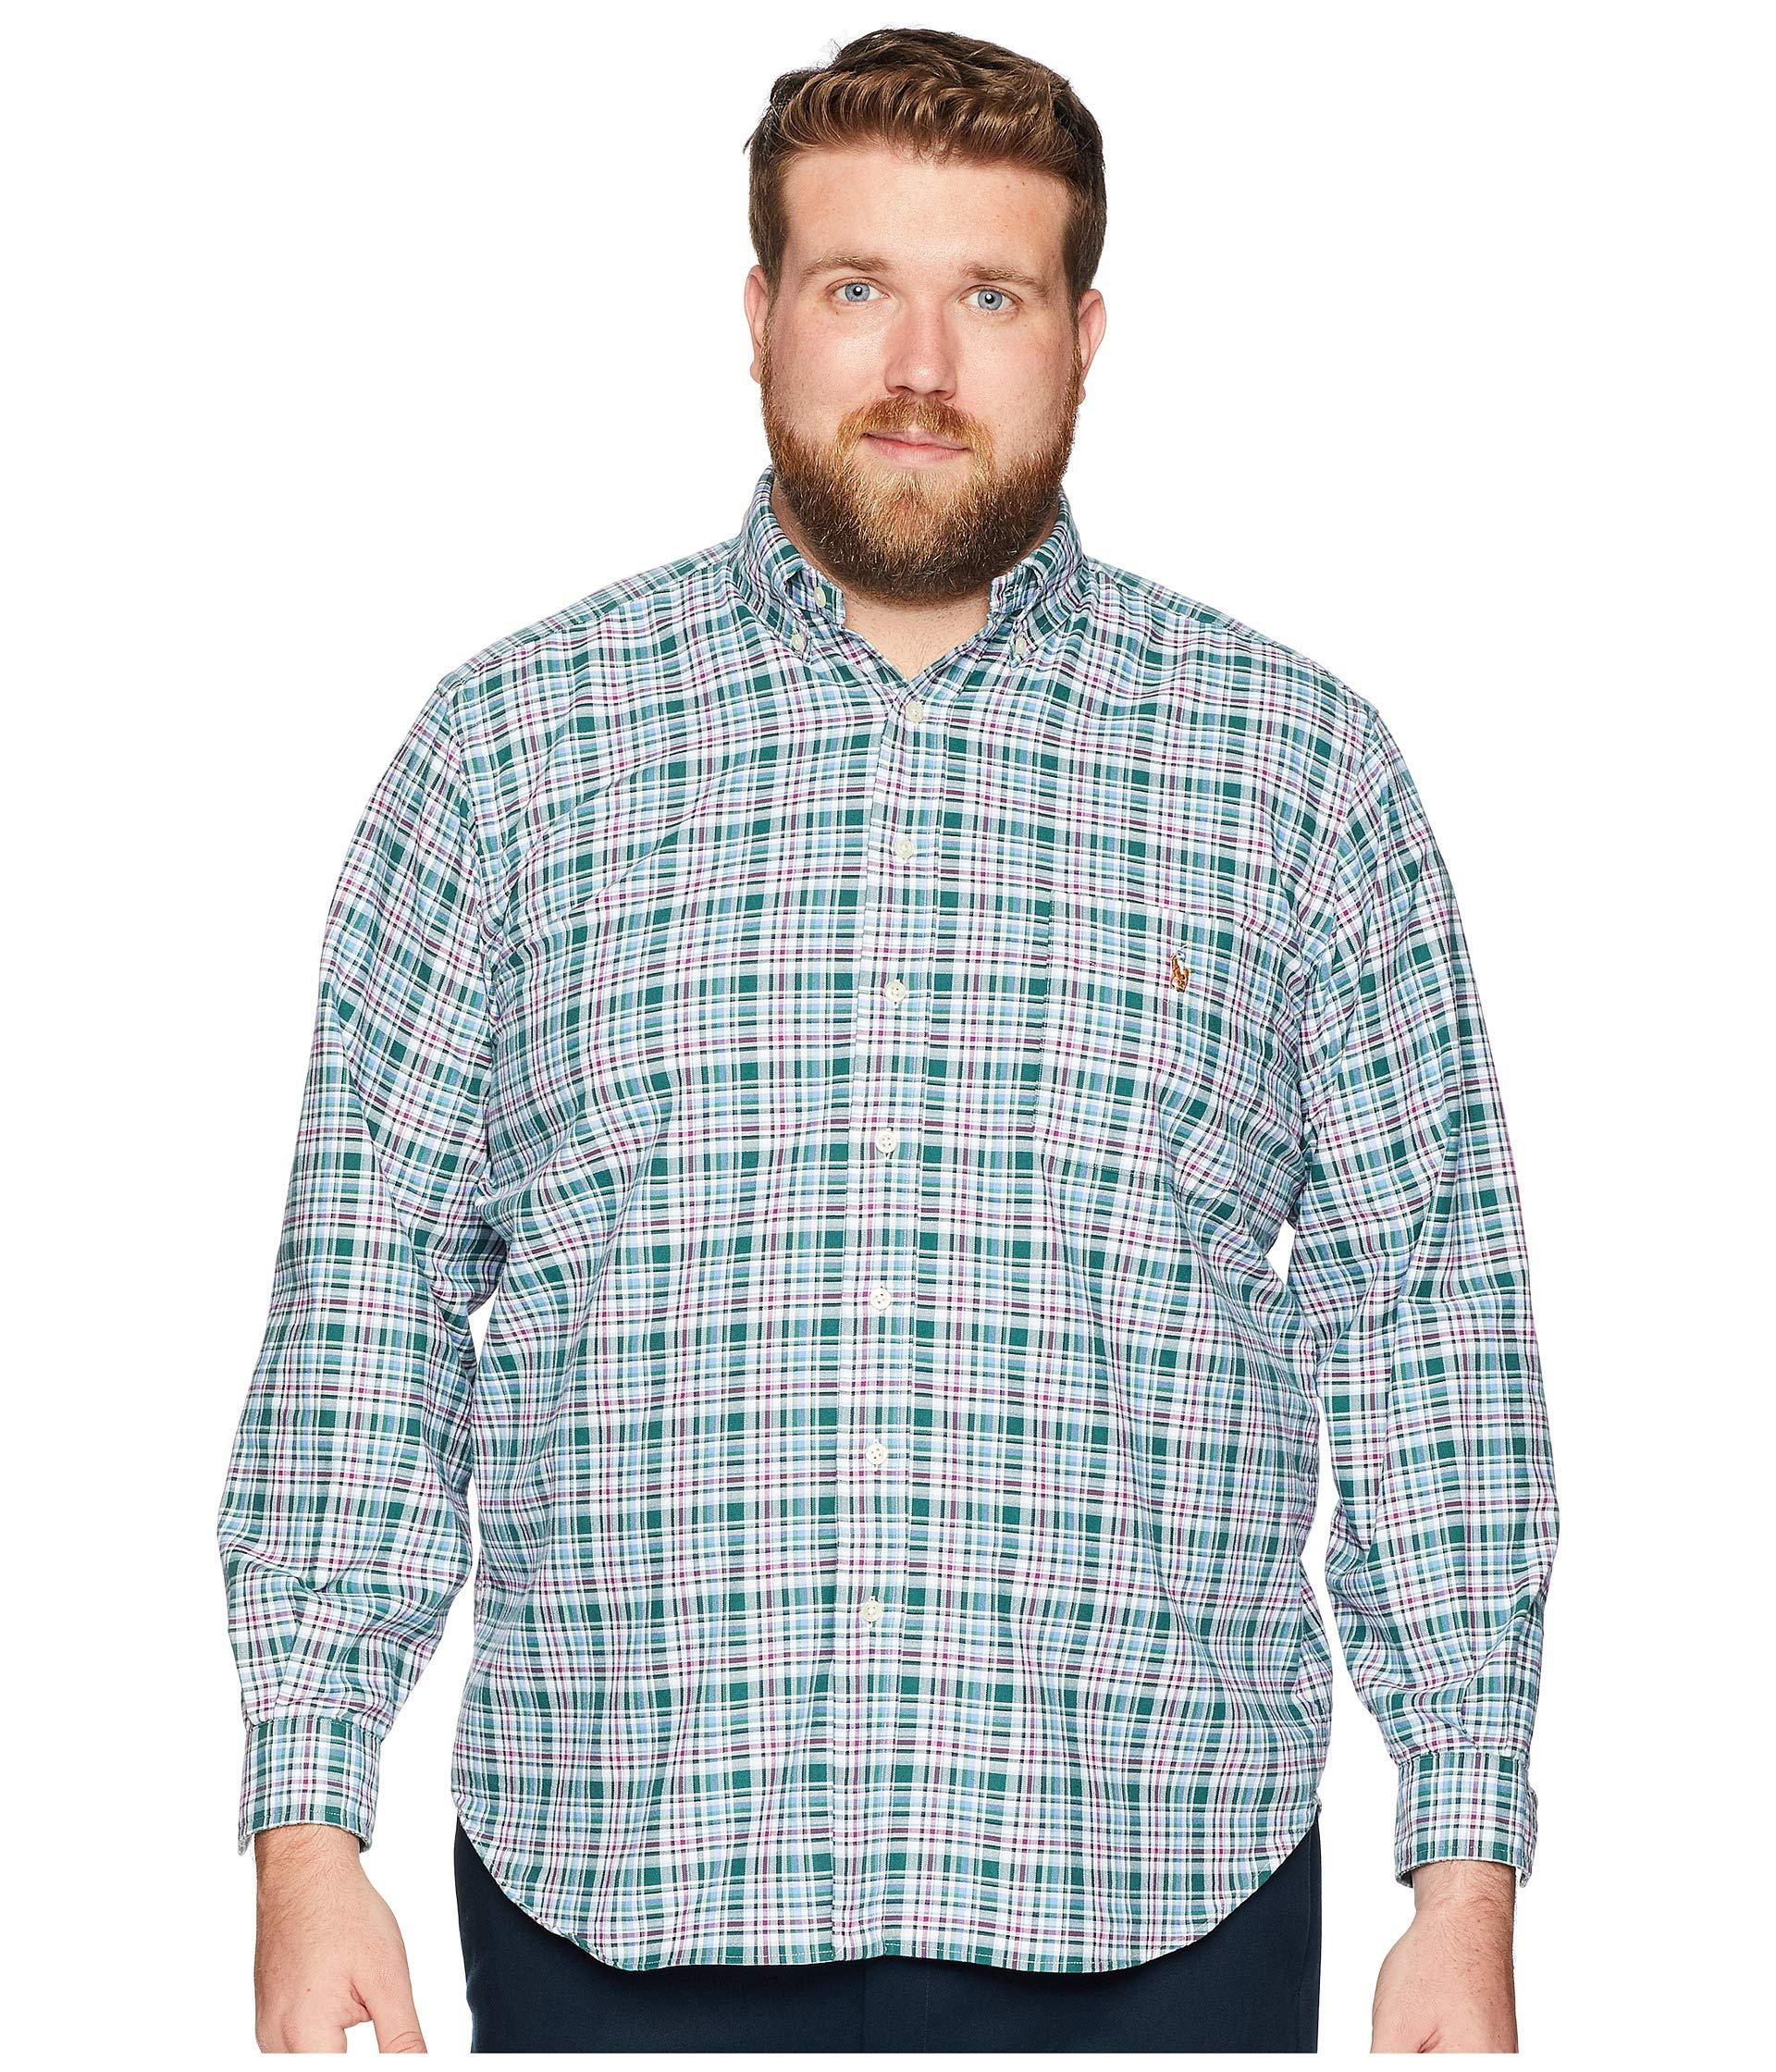 ded392ddc Lyst - Polo Ralph Lauren Big & Tall Oxford in Blue for Men